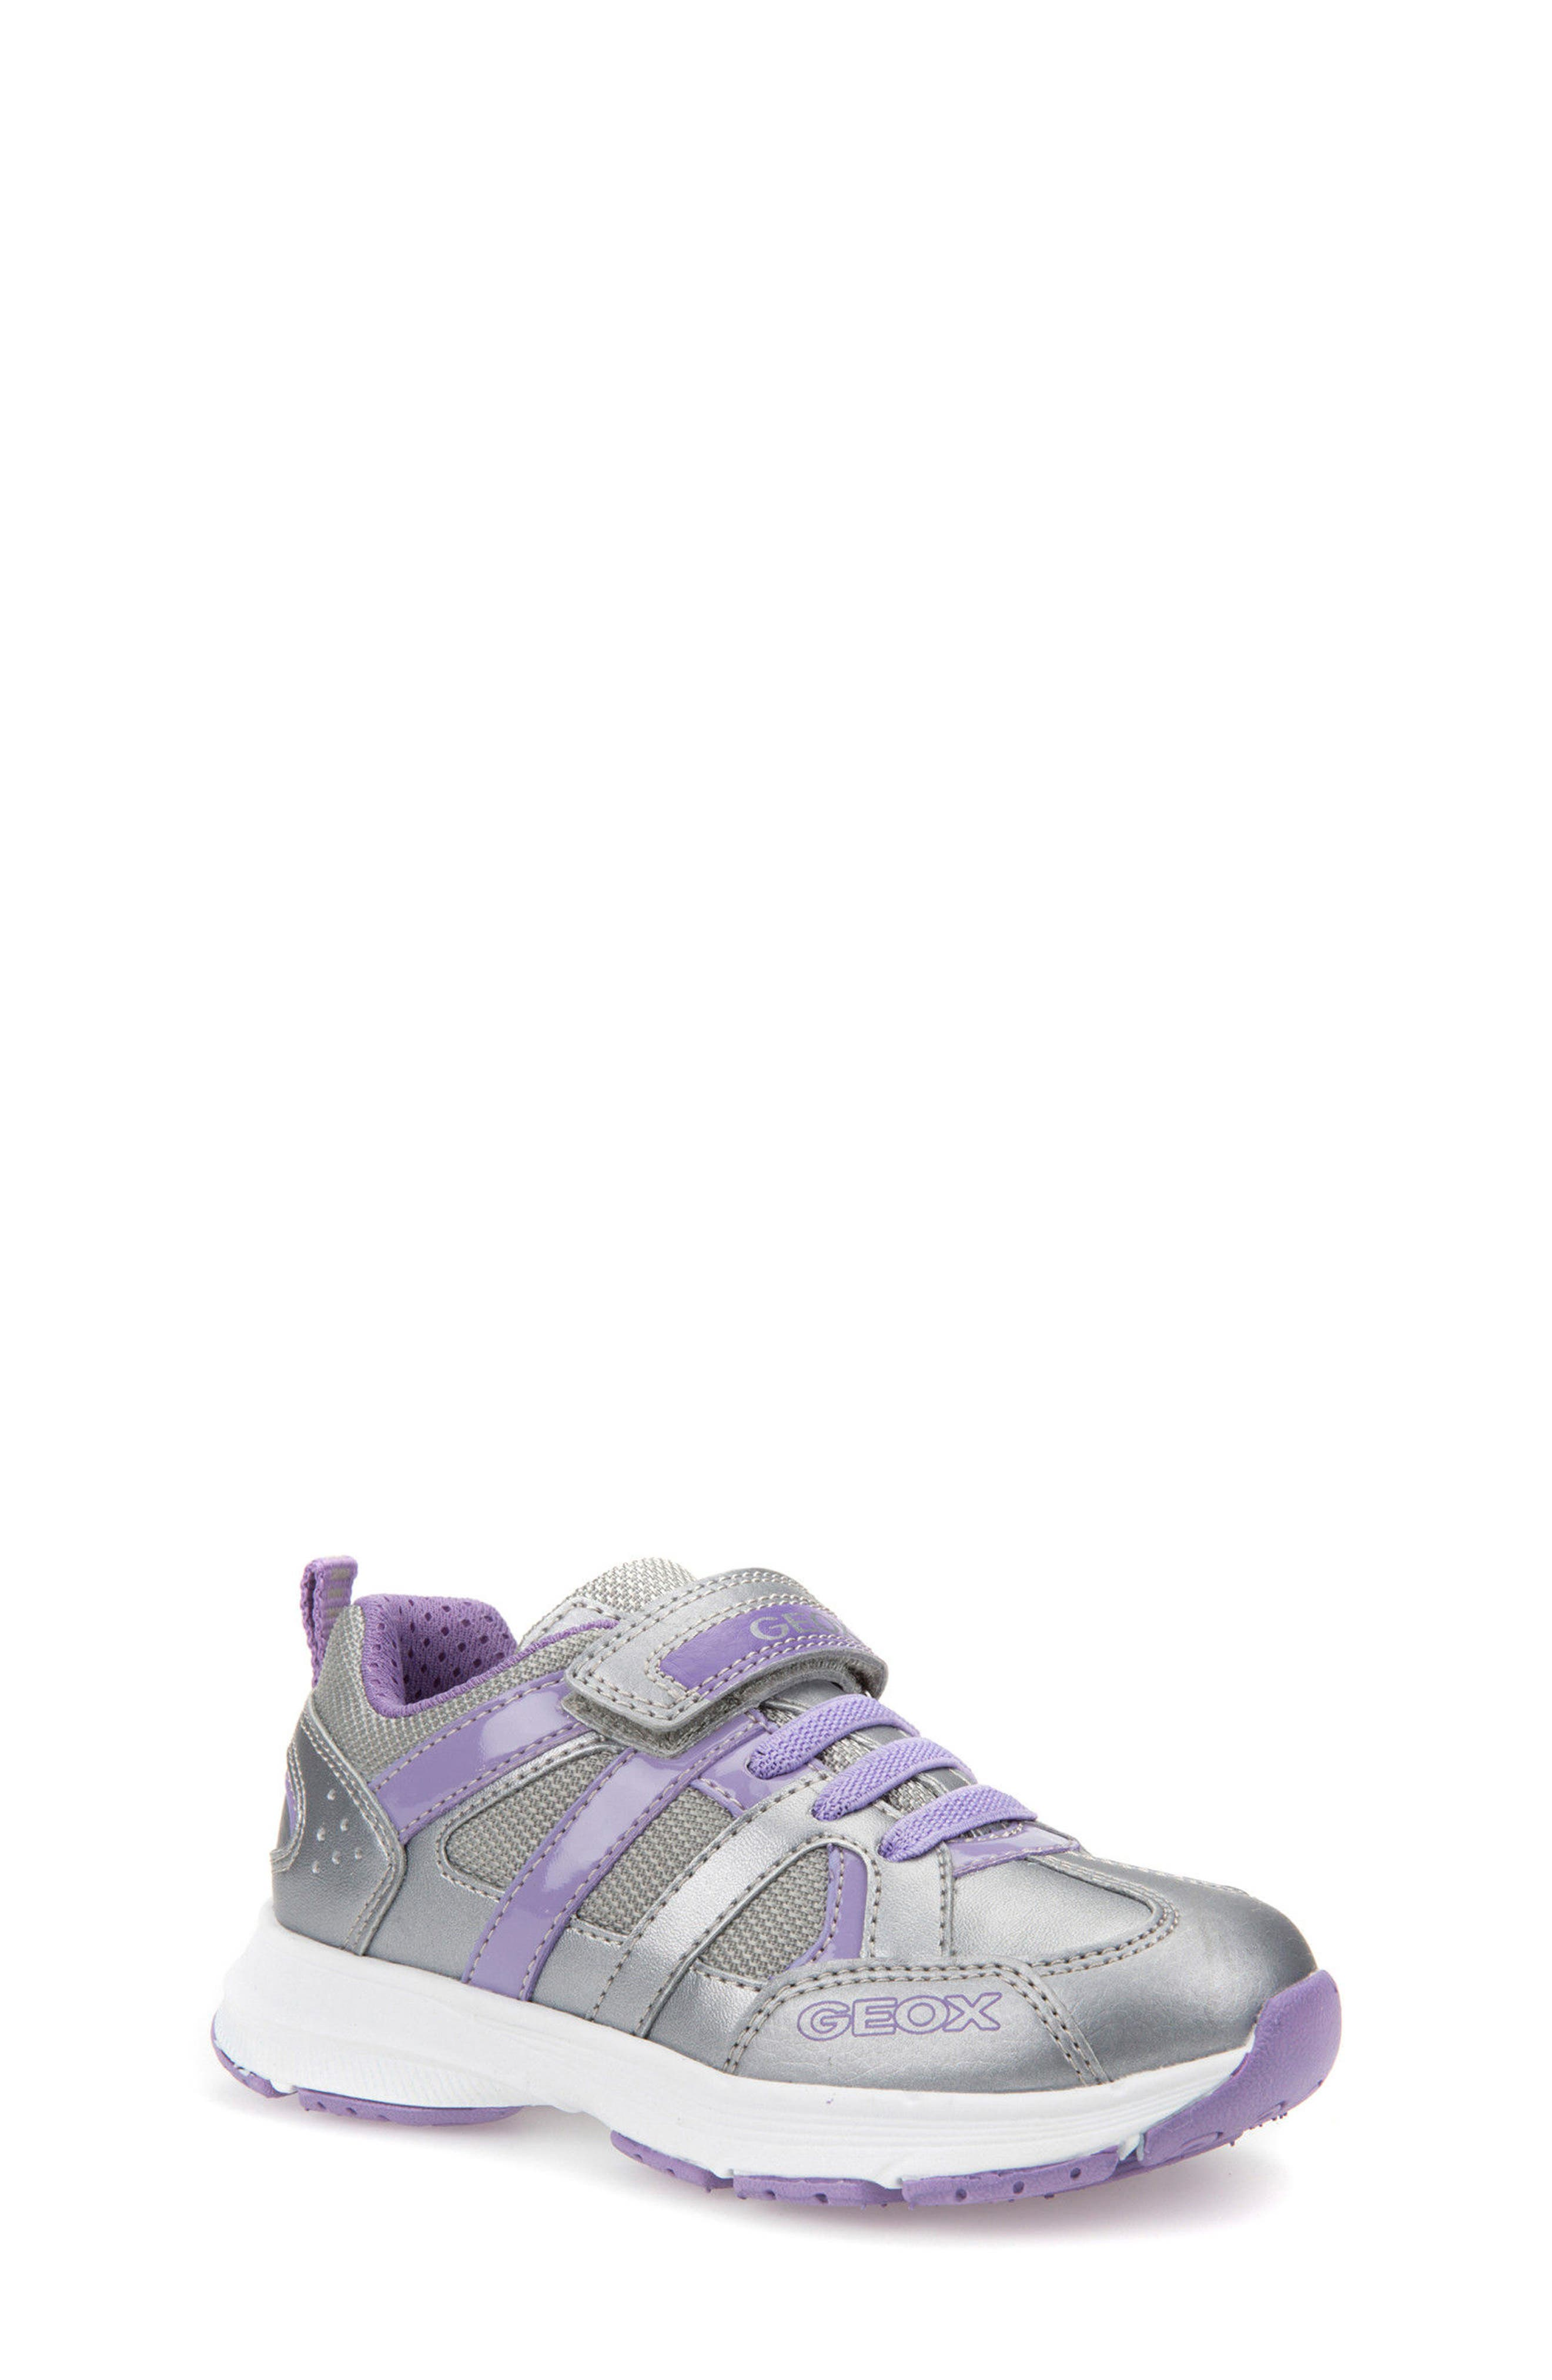 Top Fly Sneaker,                             Main thumbnail 1, color,                             040